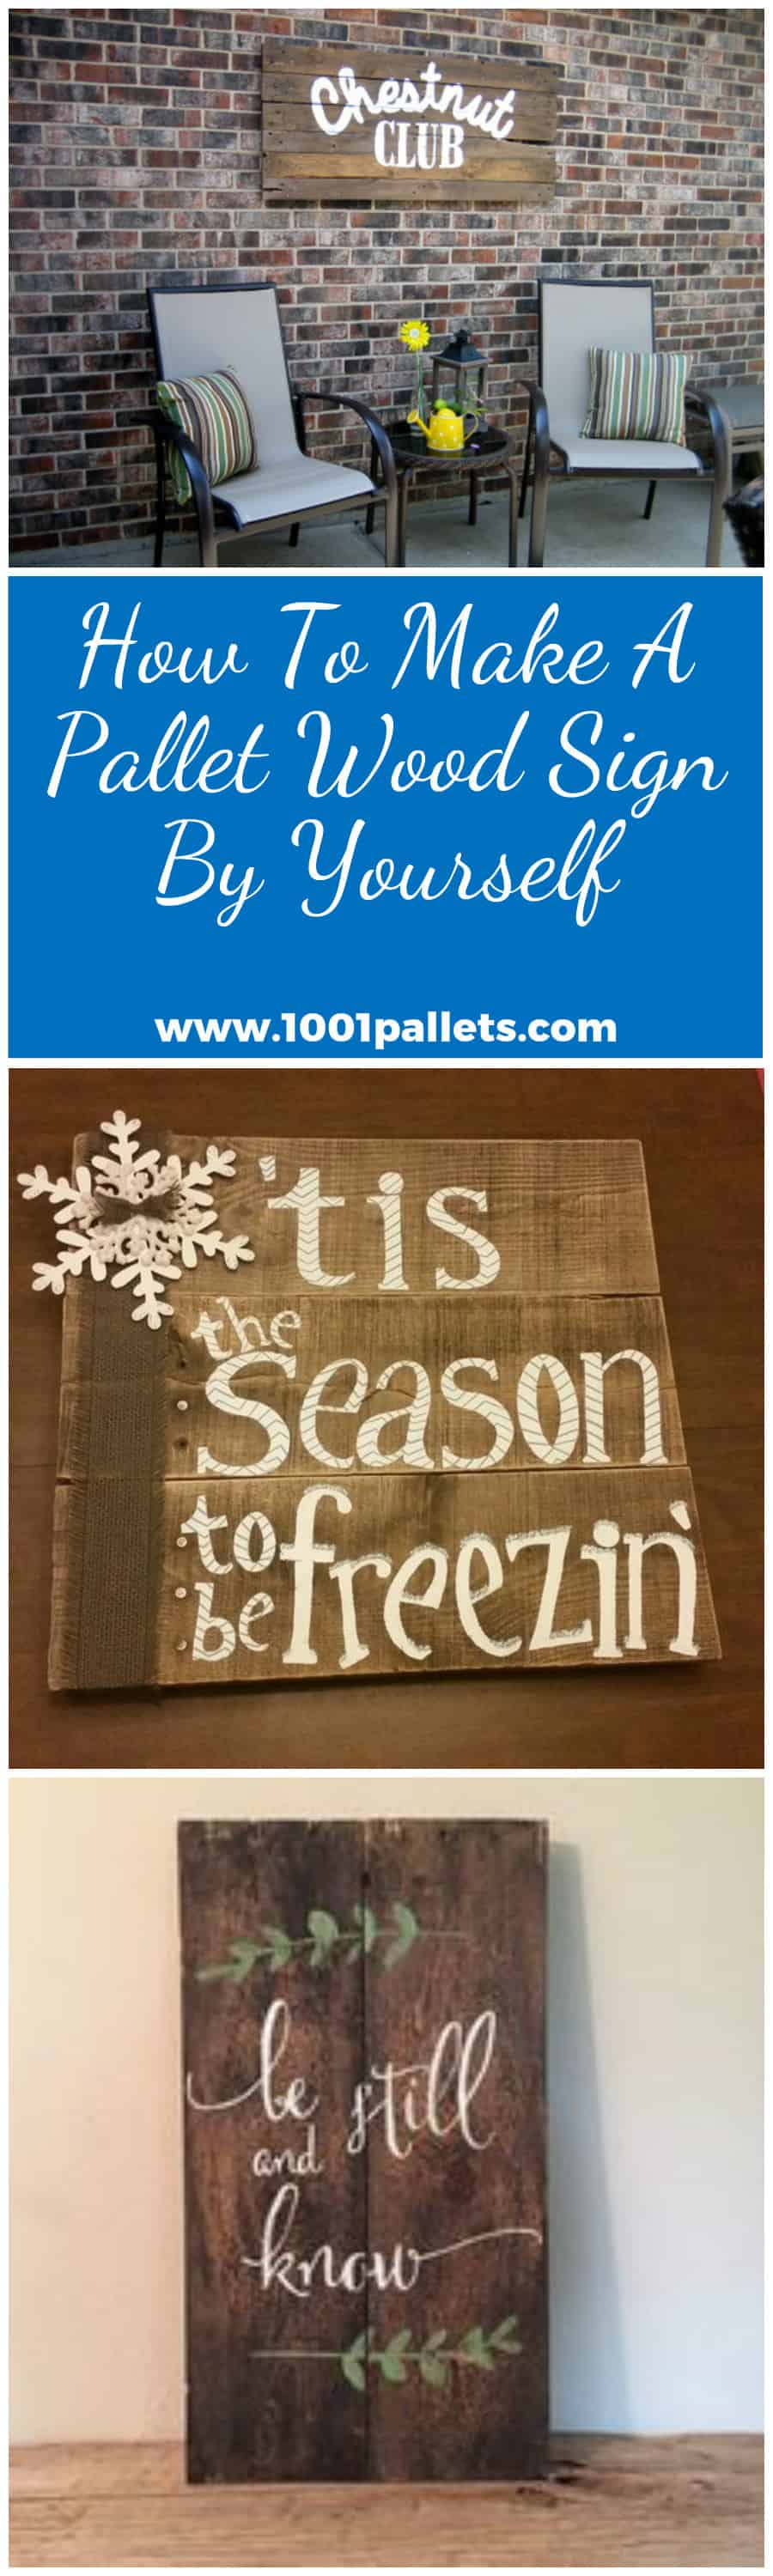 How To Make A Pallet Wood Sign By Yourself 1001 Pallets